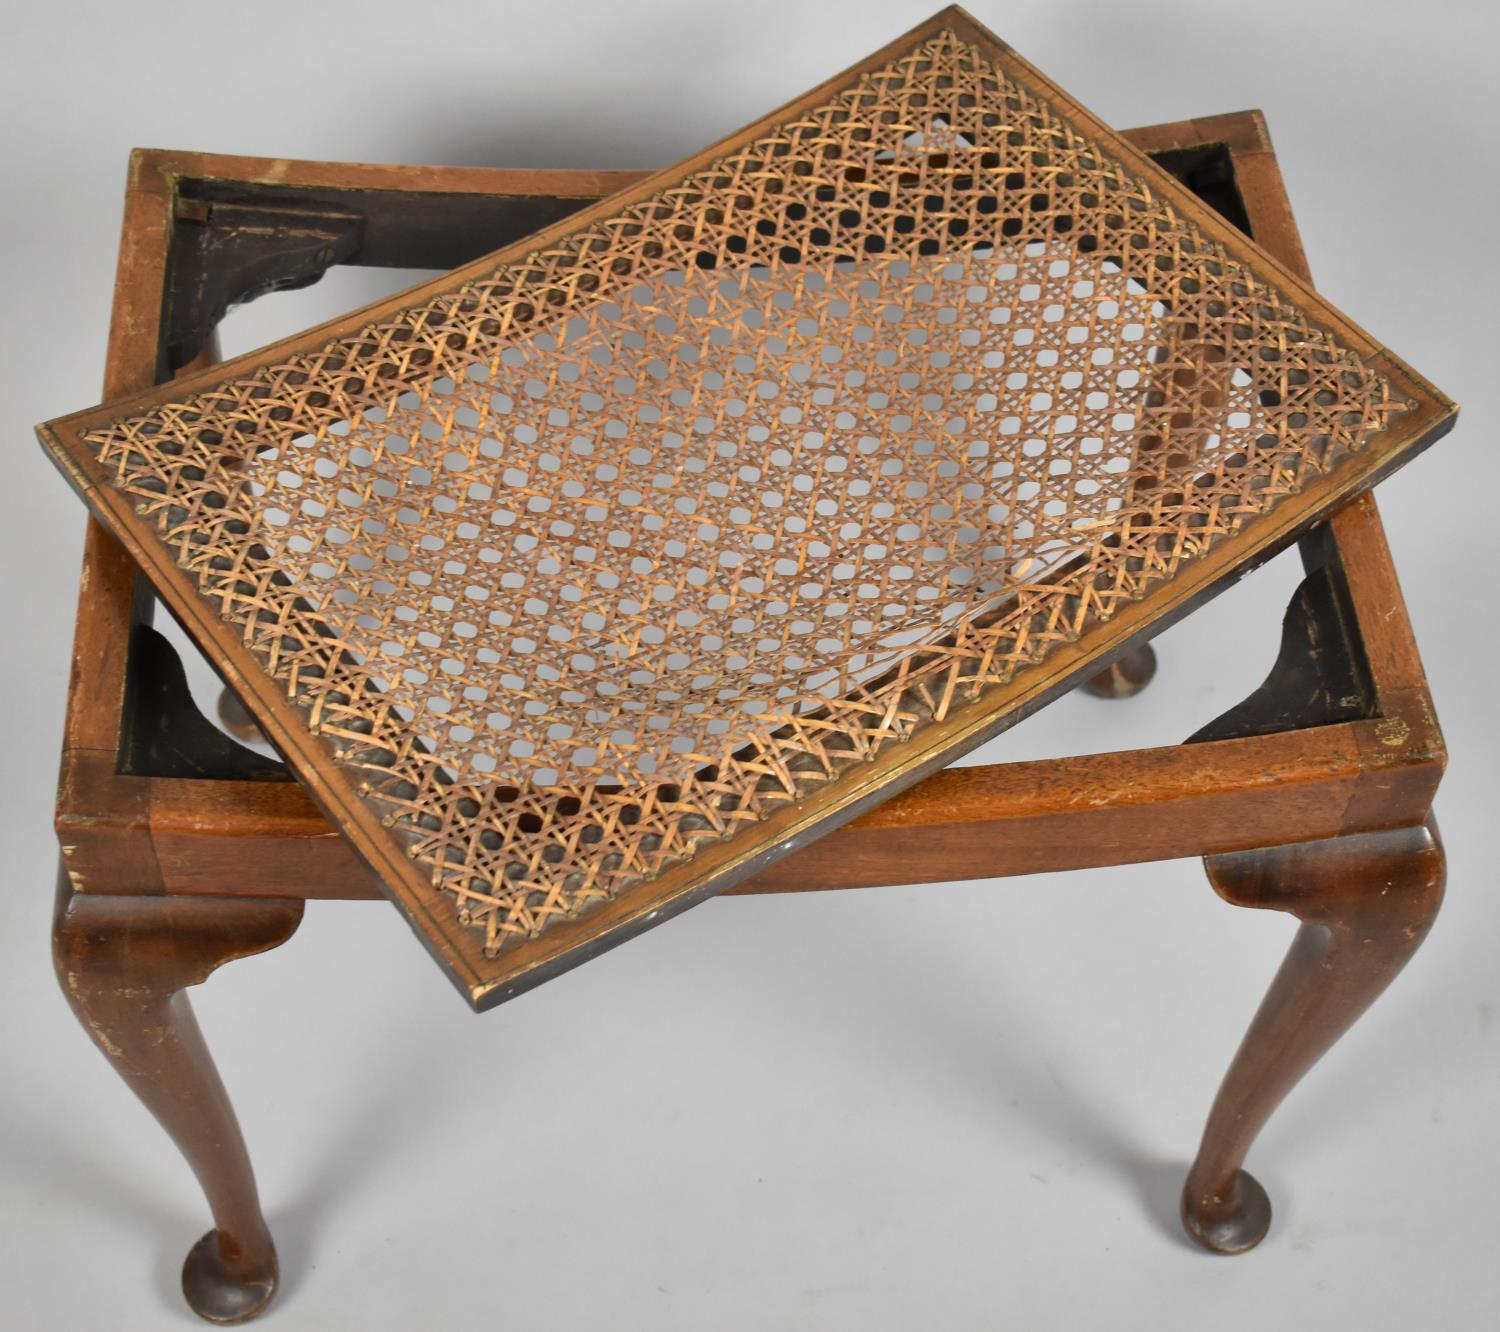 A Mid 20th Century Walnut Framed Rectangular Stool on Cabriole Supports, Requires Recaning, 56cm - Image 3 of 4